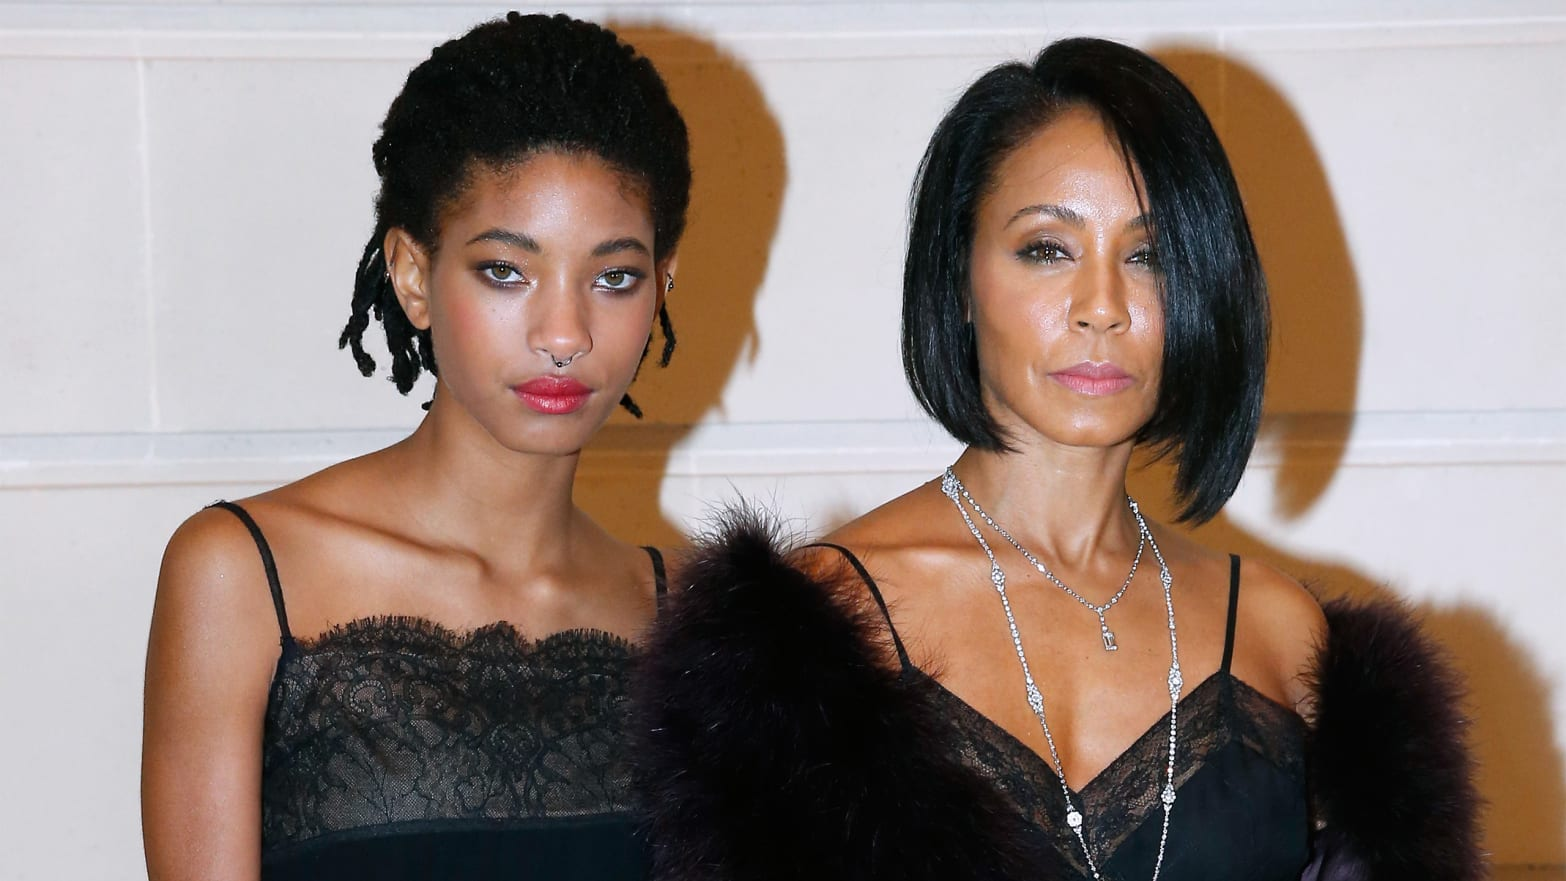 willow smith 2020 age